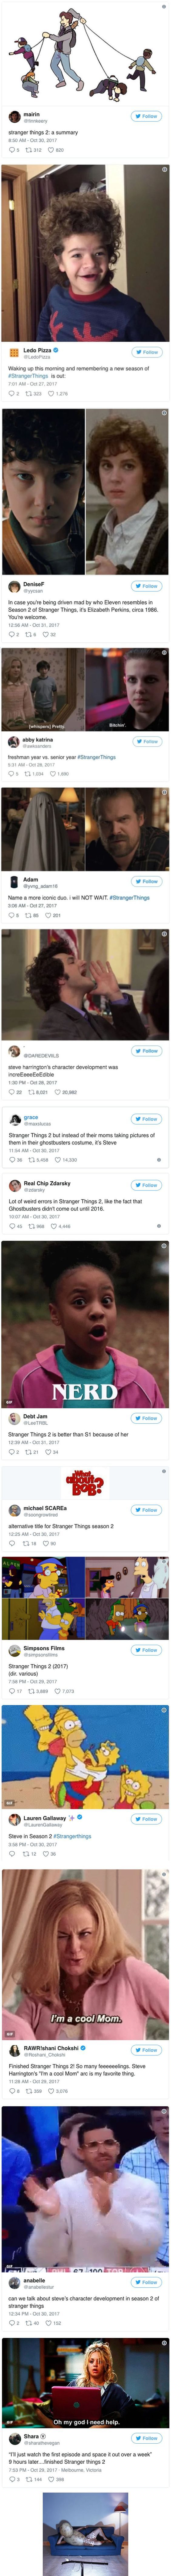 People's reactions to Stranger Things 2